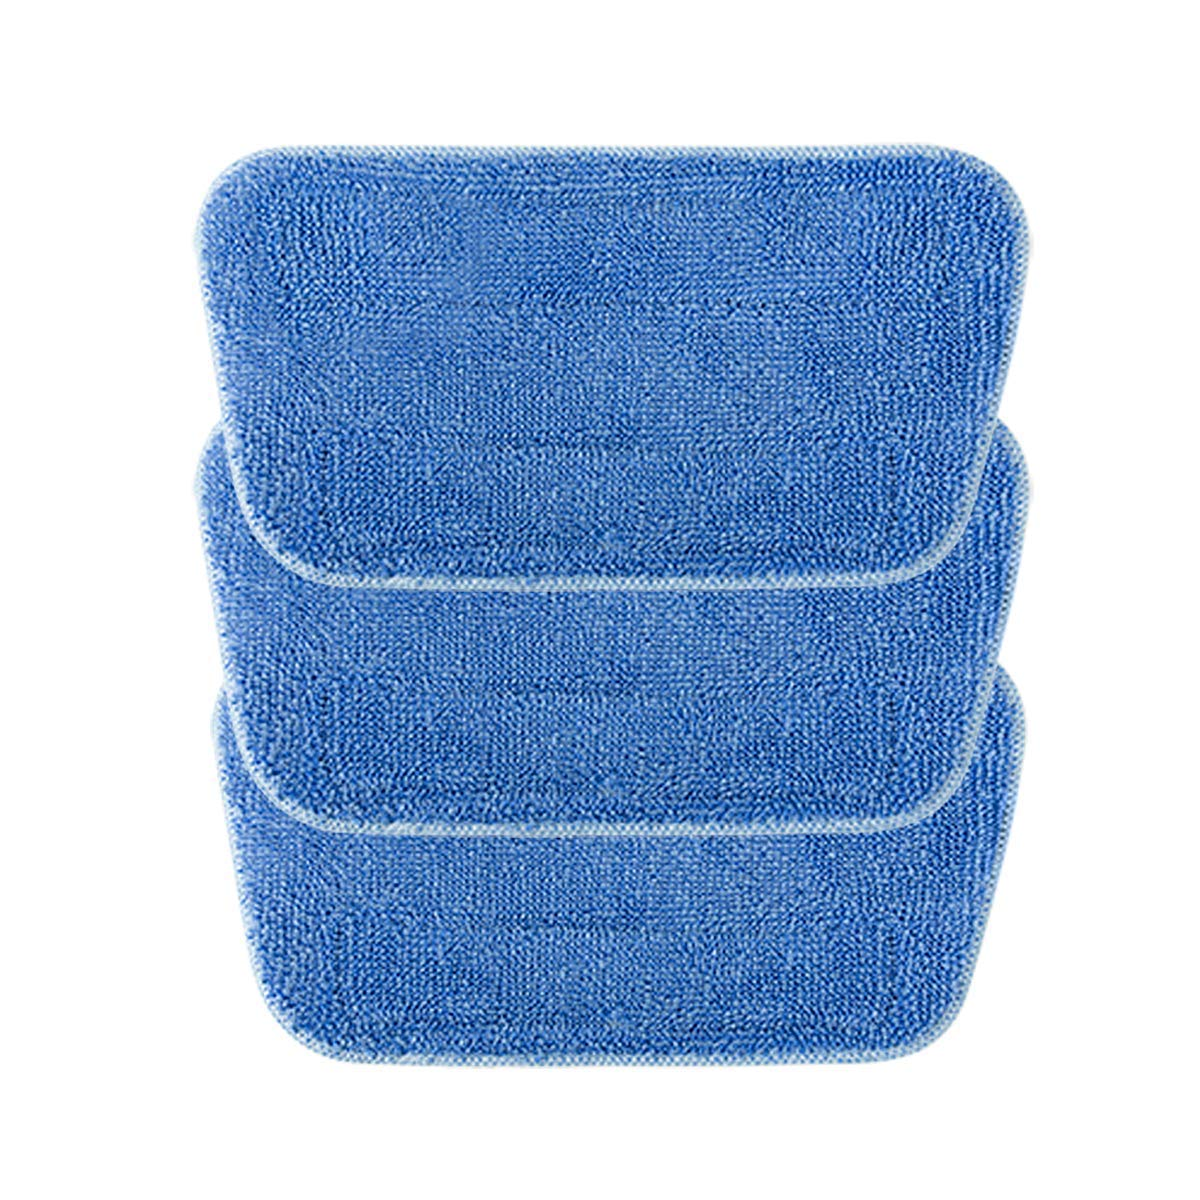 iwoly Steam Mop Cleaning Pads 3 Pack Washable Floor Mop Replacement Pads by iwoly